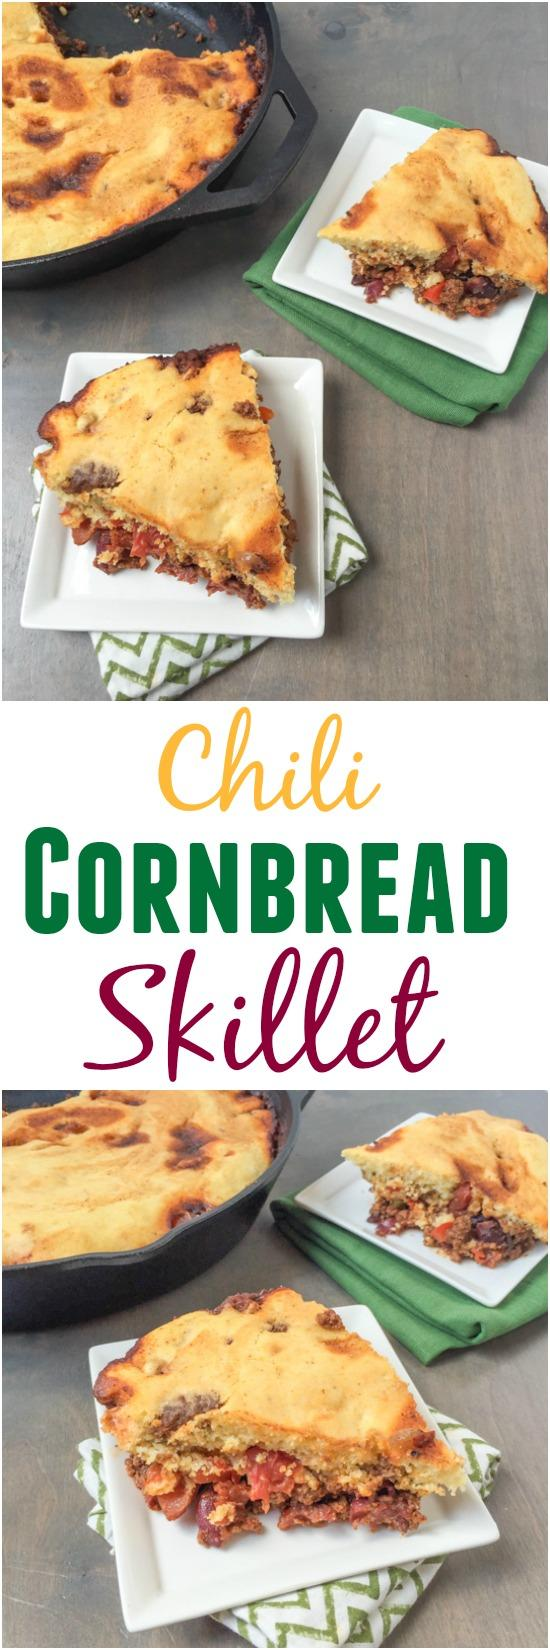 Simple and flavorful, this Chili Cornbread Skillet is ready in about 30 minutes for an easy weeknight dinner the whole family will love.